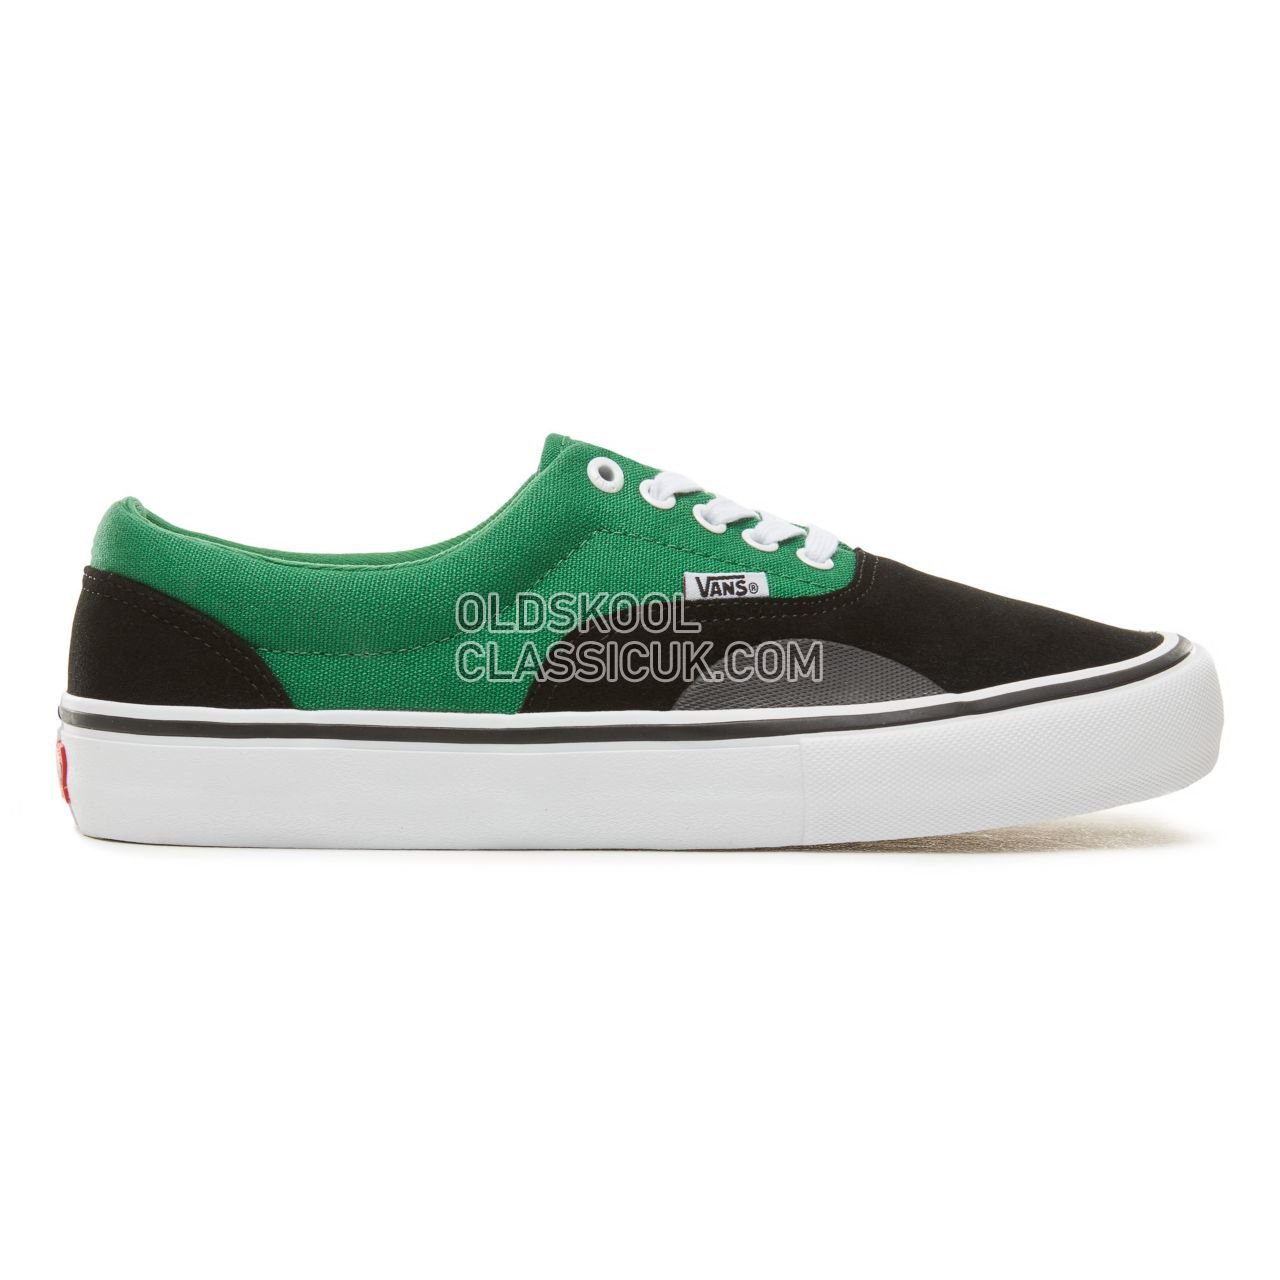 Vans Era Pro Sneakers Mens Black/Amazon V00VFBU1K Shoes